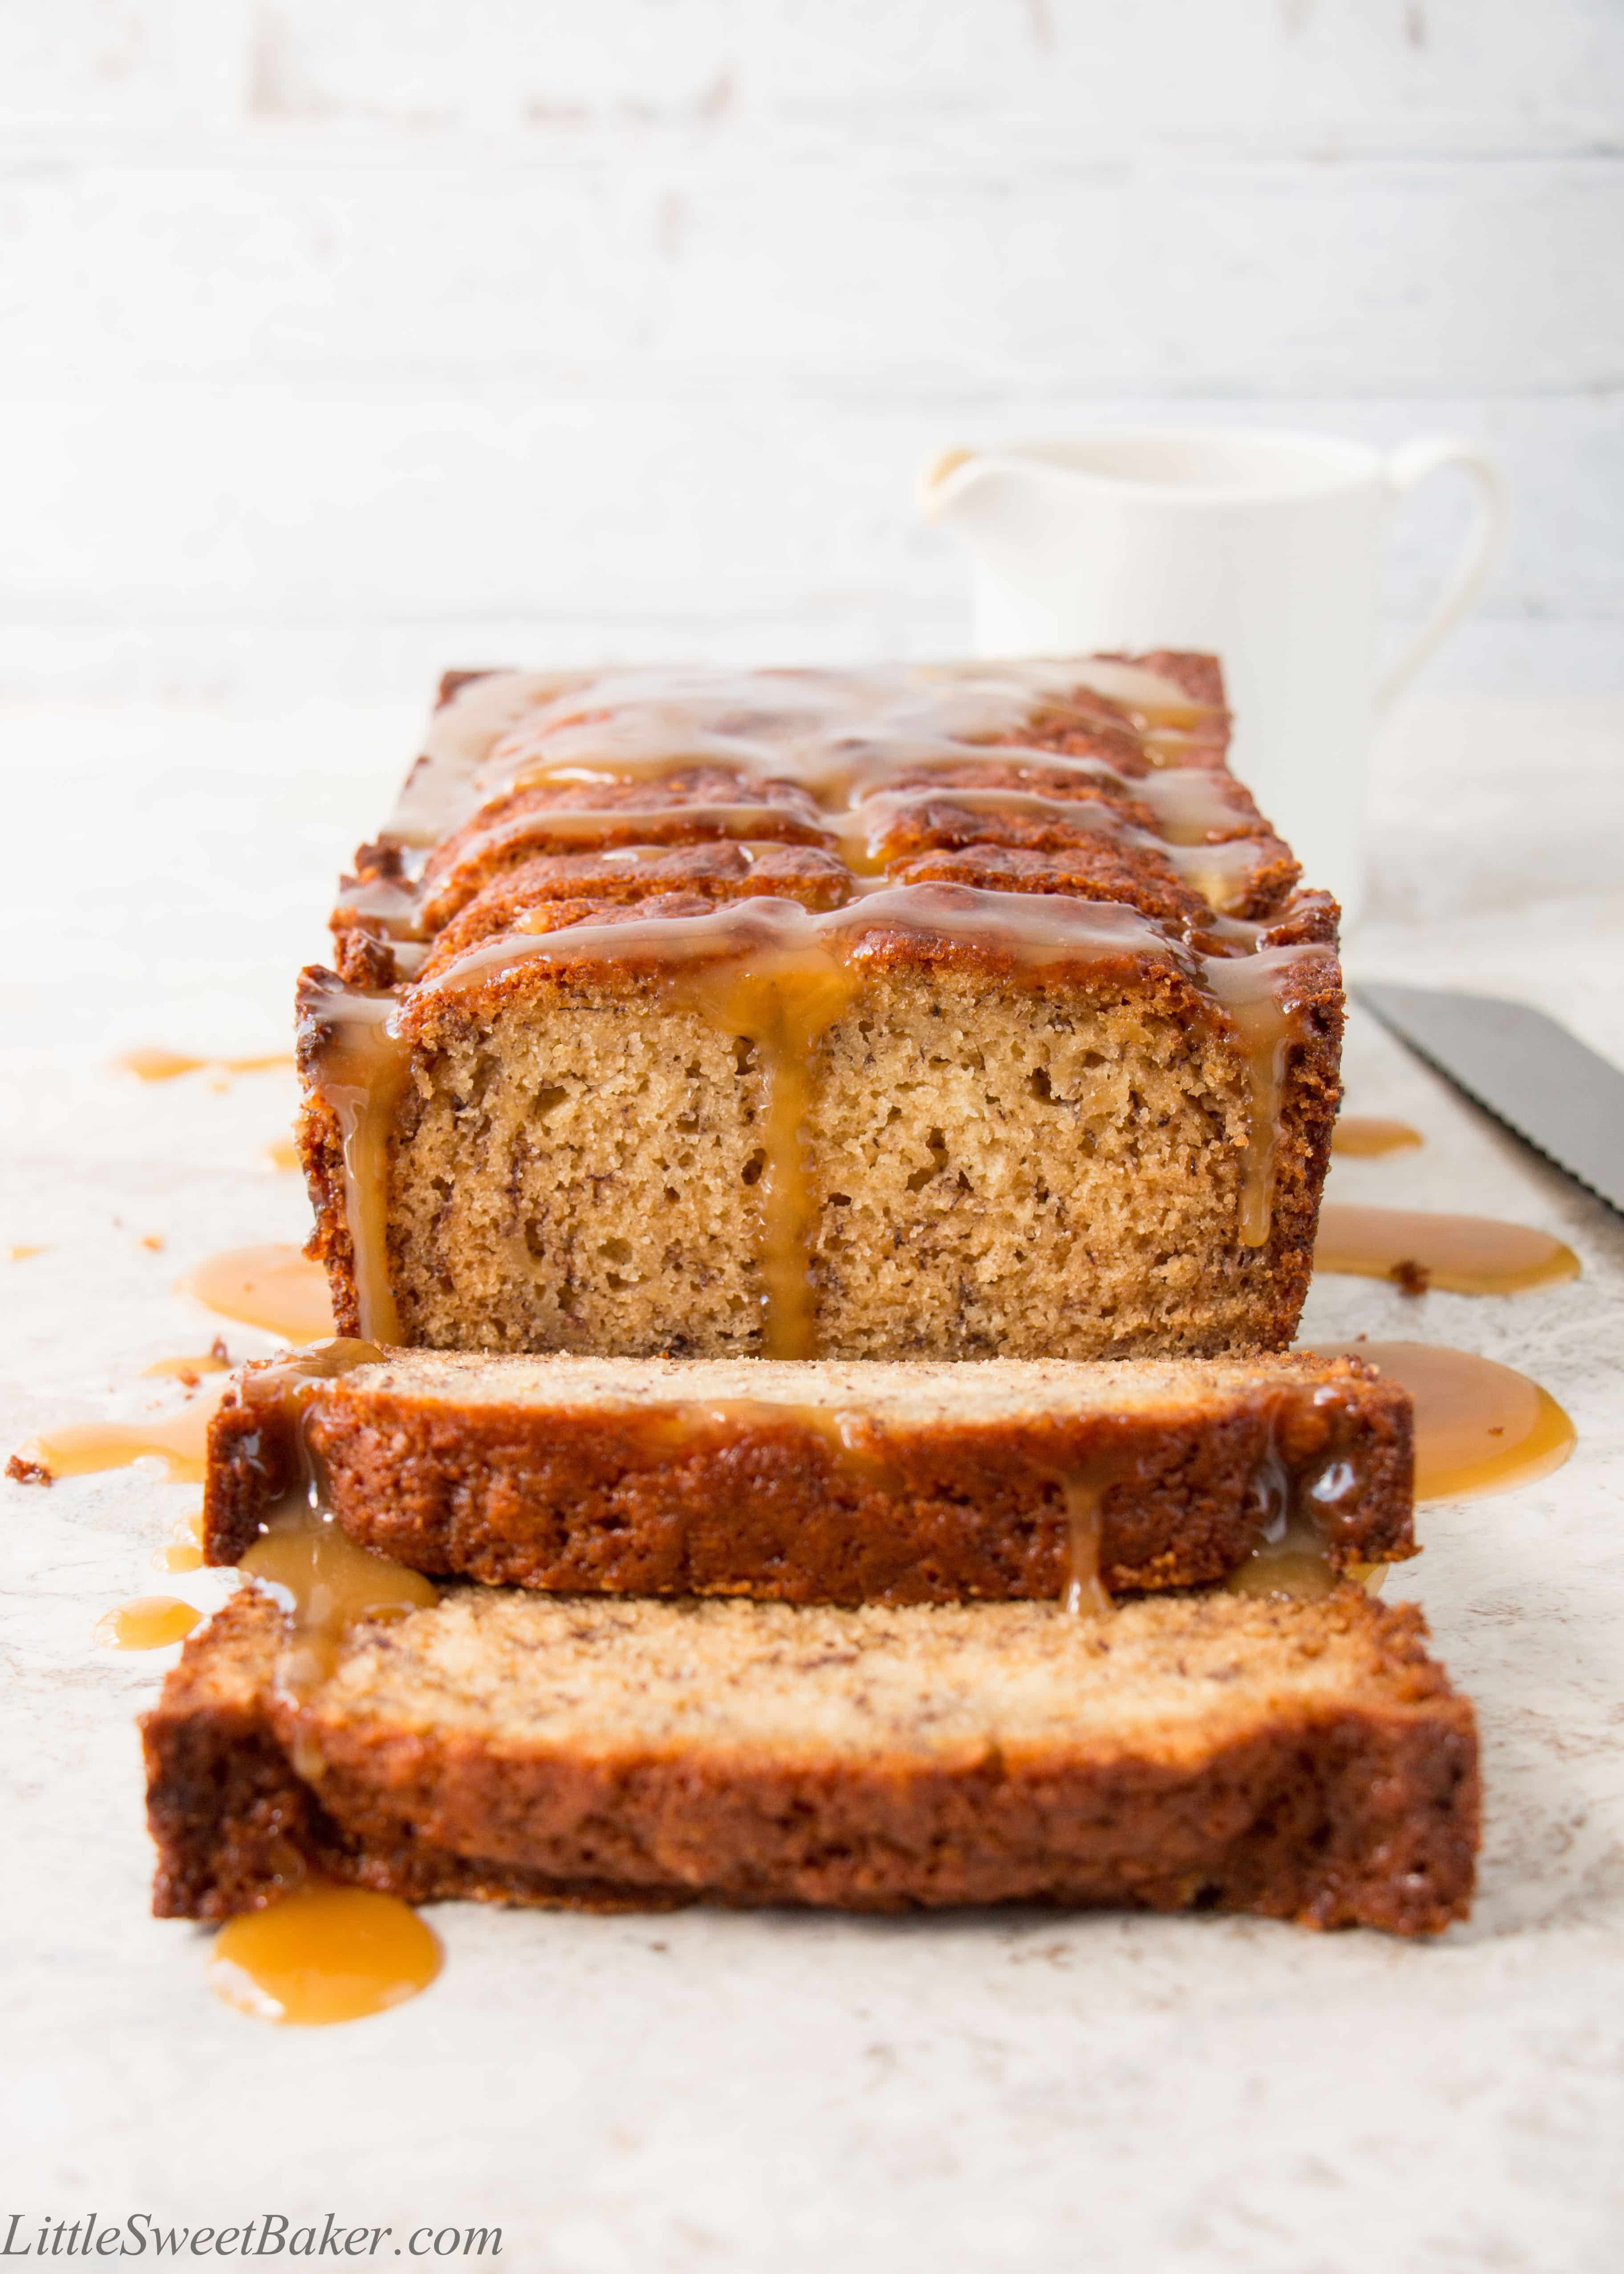 Salted caramel banana bread little sweet baker the flavor of salted caramel infused into a soft and moist banana bread then drizzled forumfinder Images